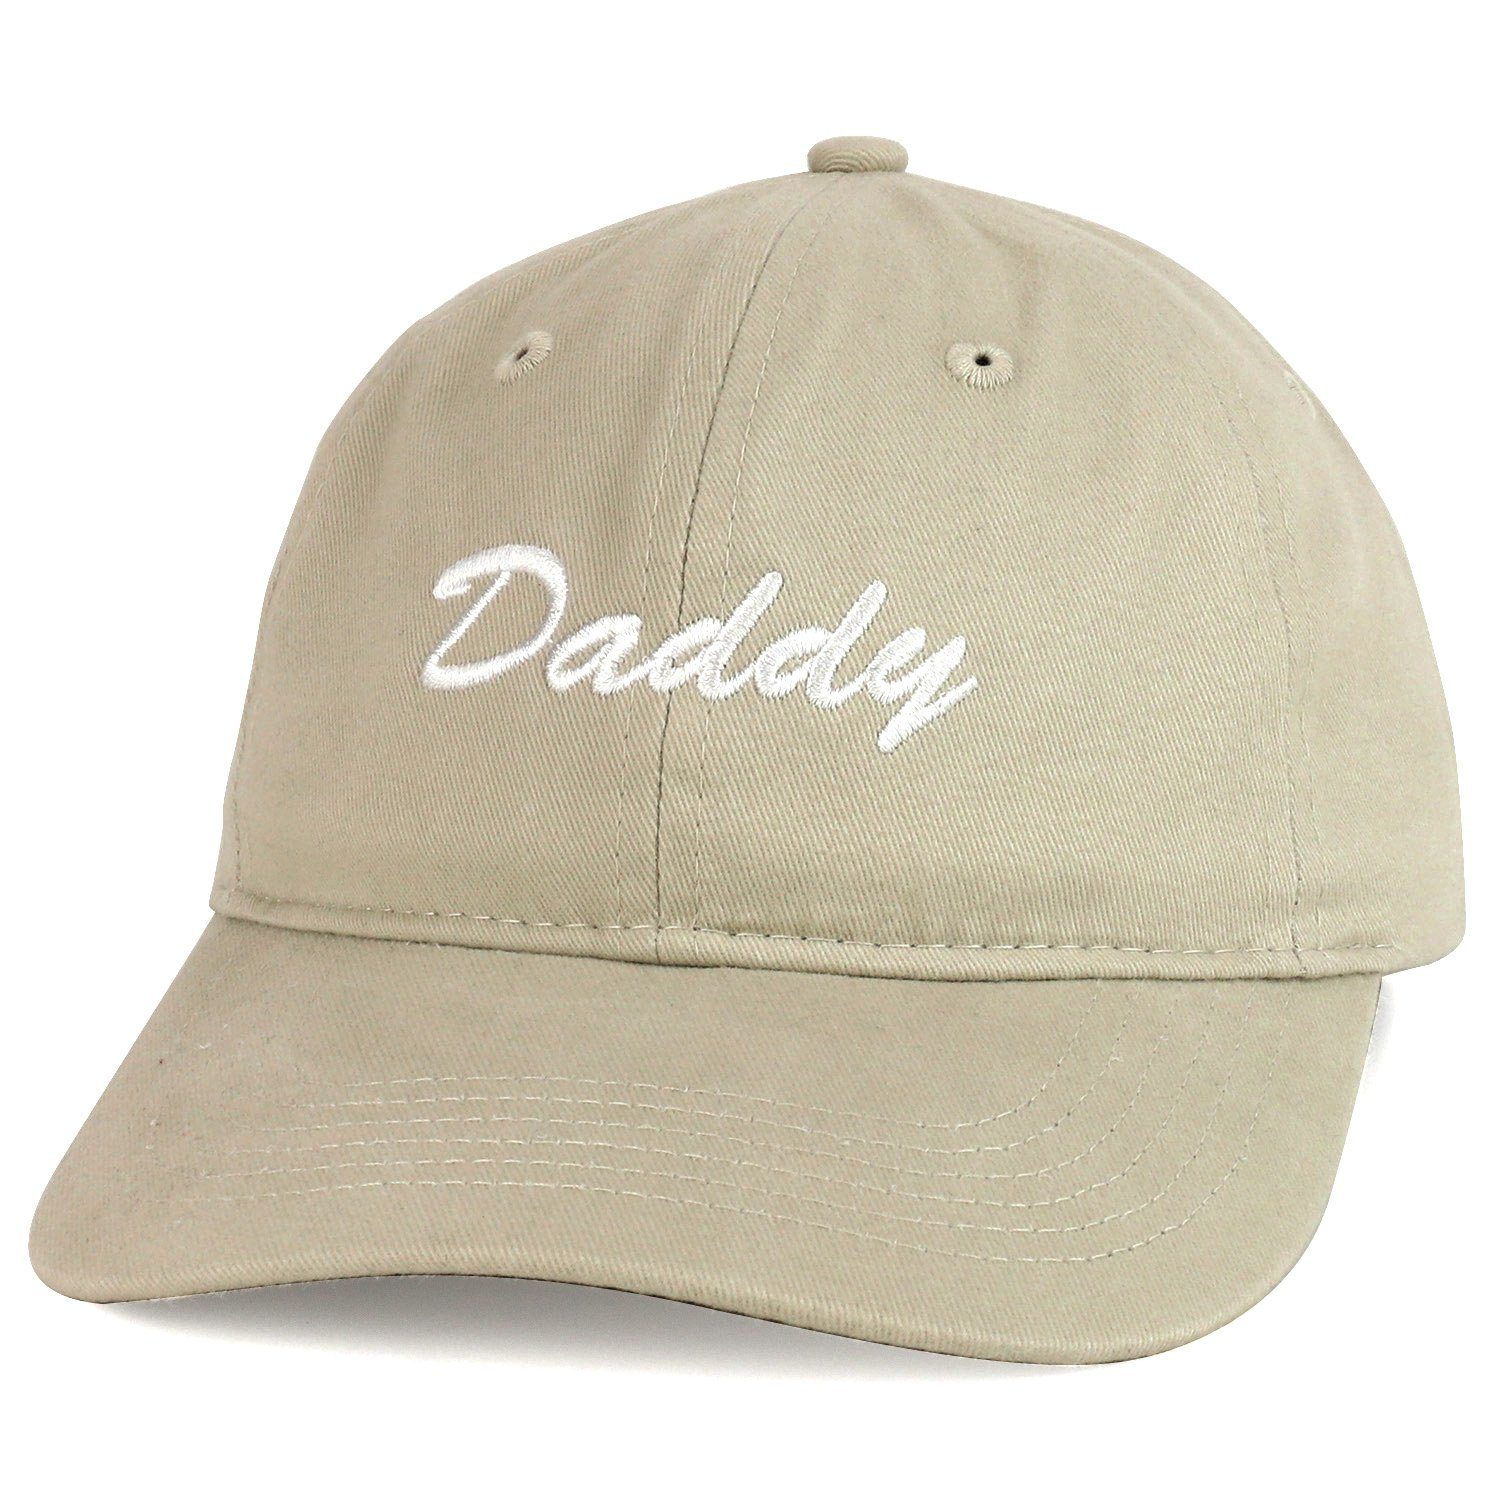 Trendy Apparel Shop Daddy Script Font Embroidered Low Profile Soft Cotton Baseball Cap